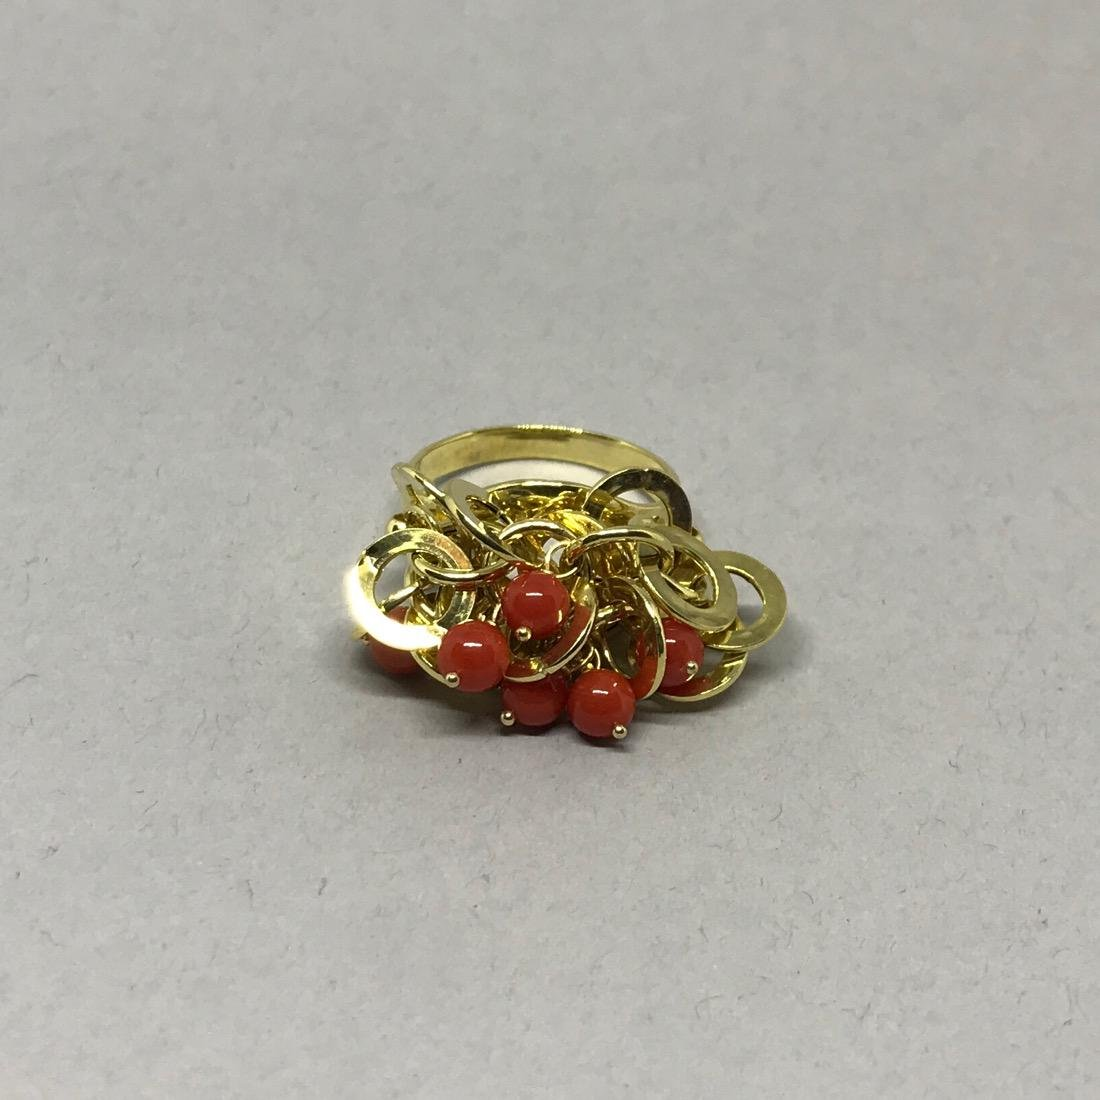 14 Kt Gold Cocktail Ring with Coral Beads. - 3